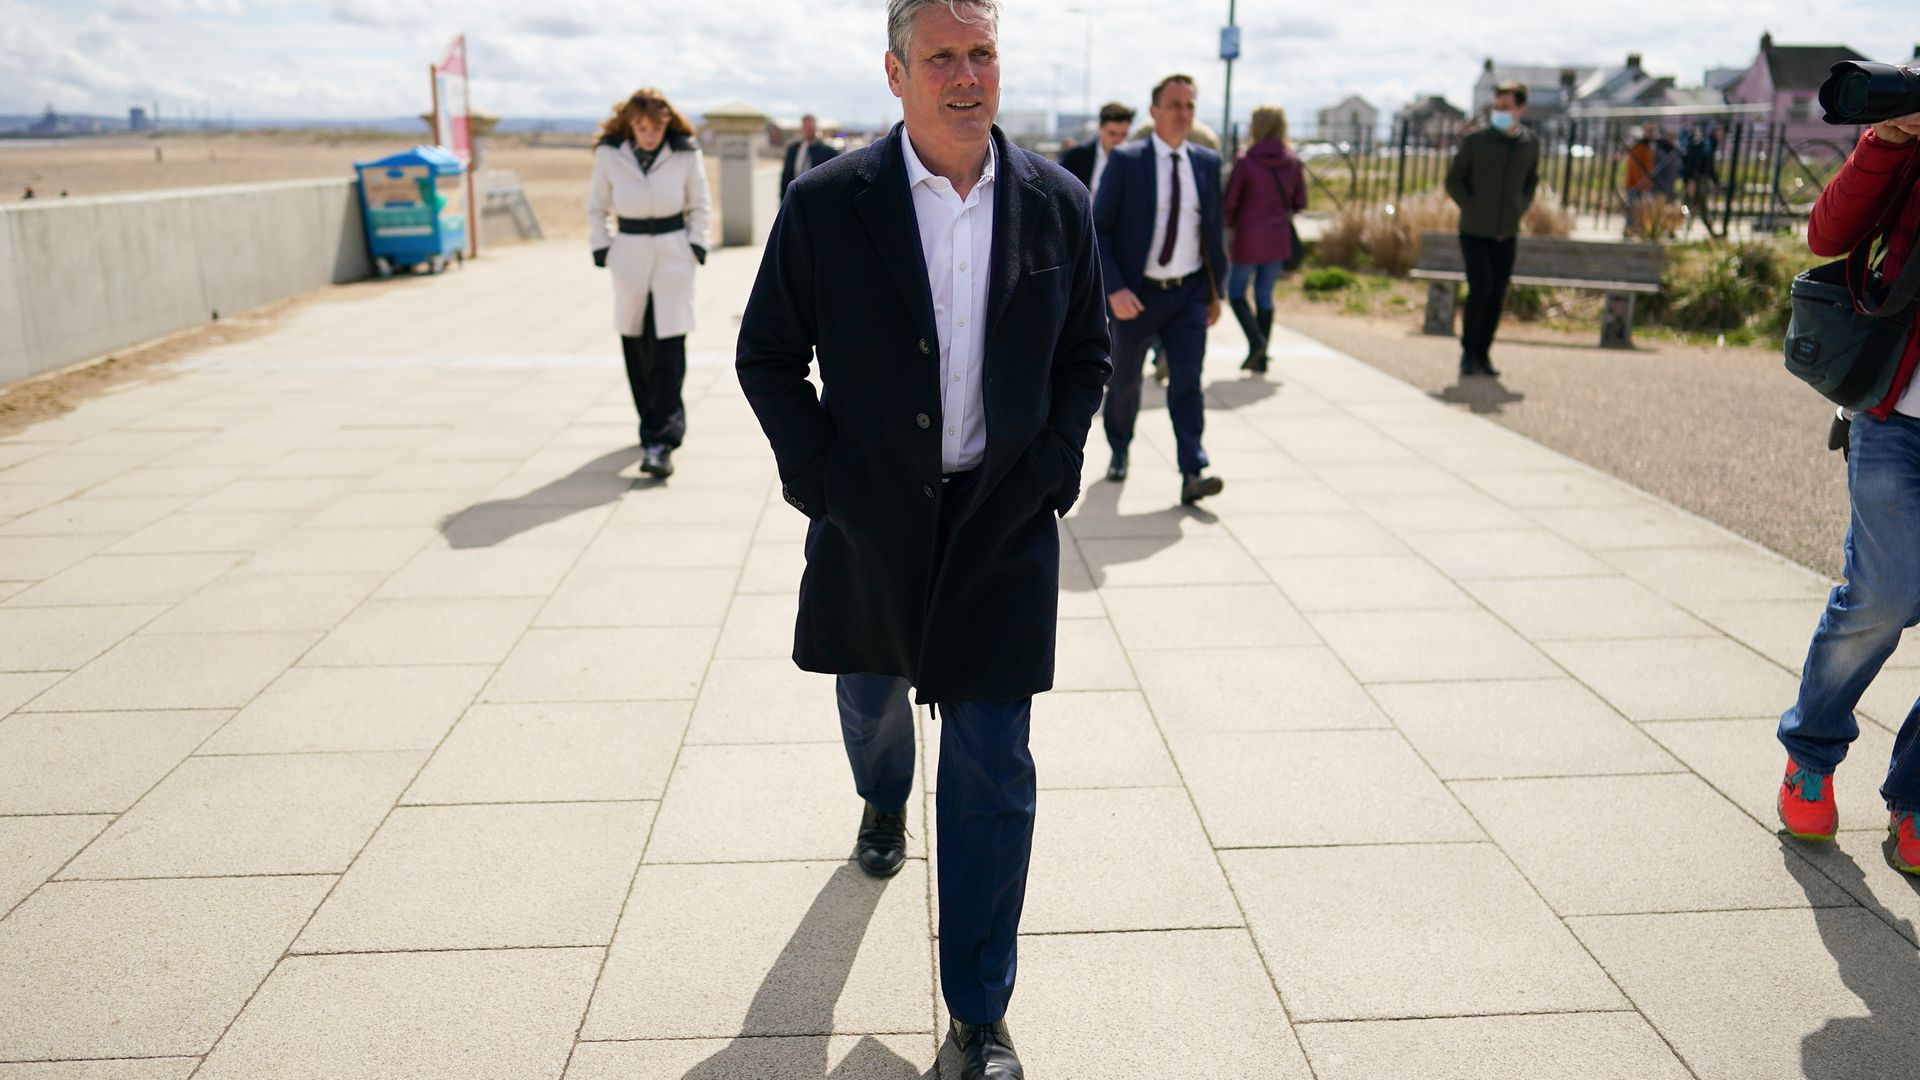 Labour leader Keir Starmer on a walkabout as they visit Seaton Carew seafront while on the election campaign trail - Credit: PA